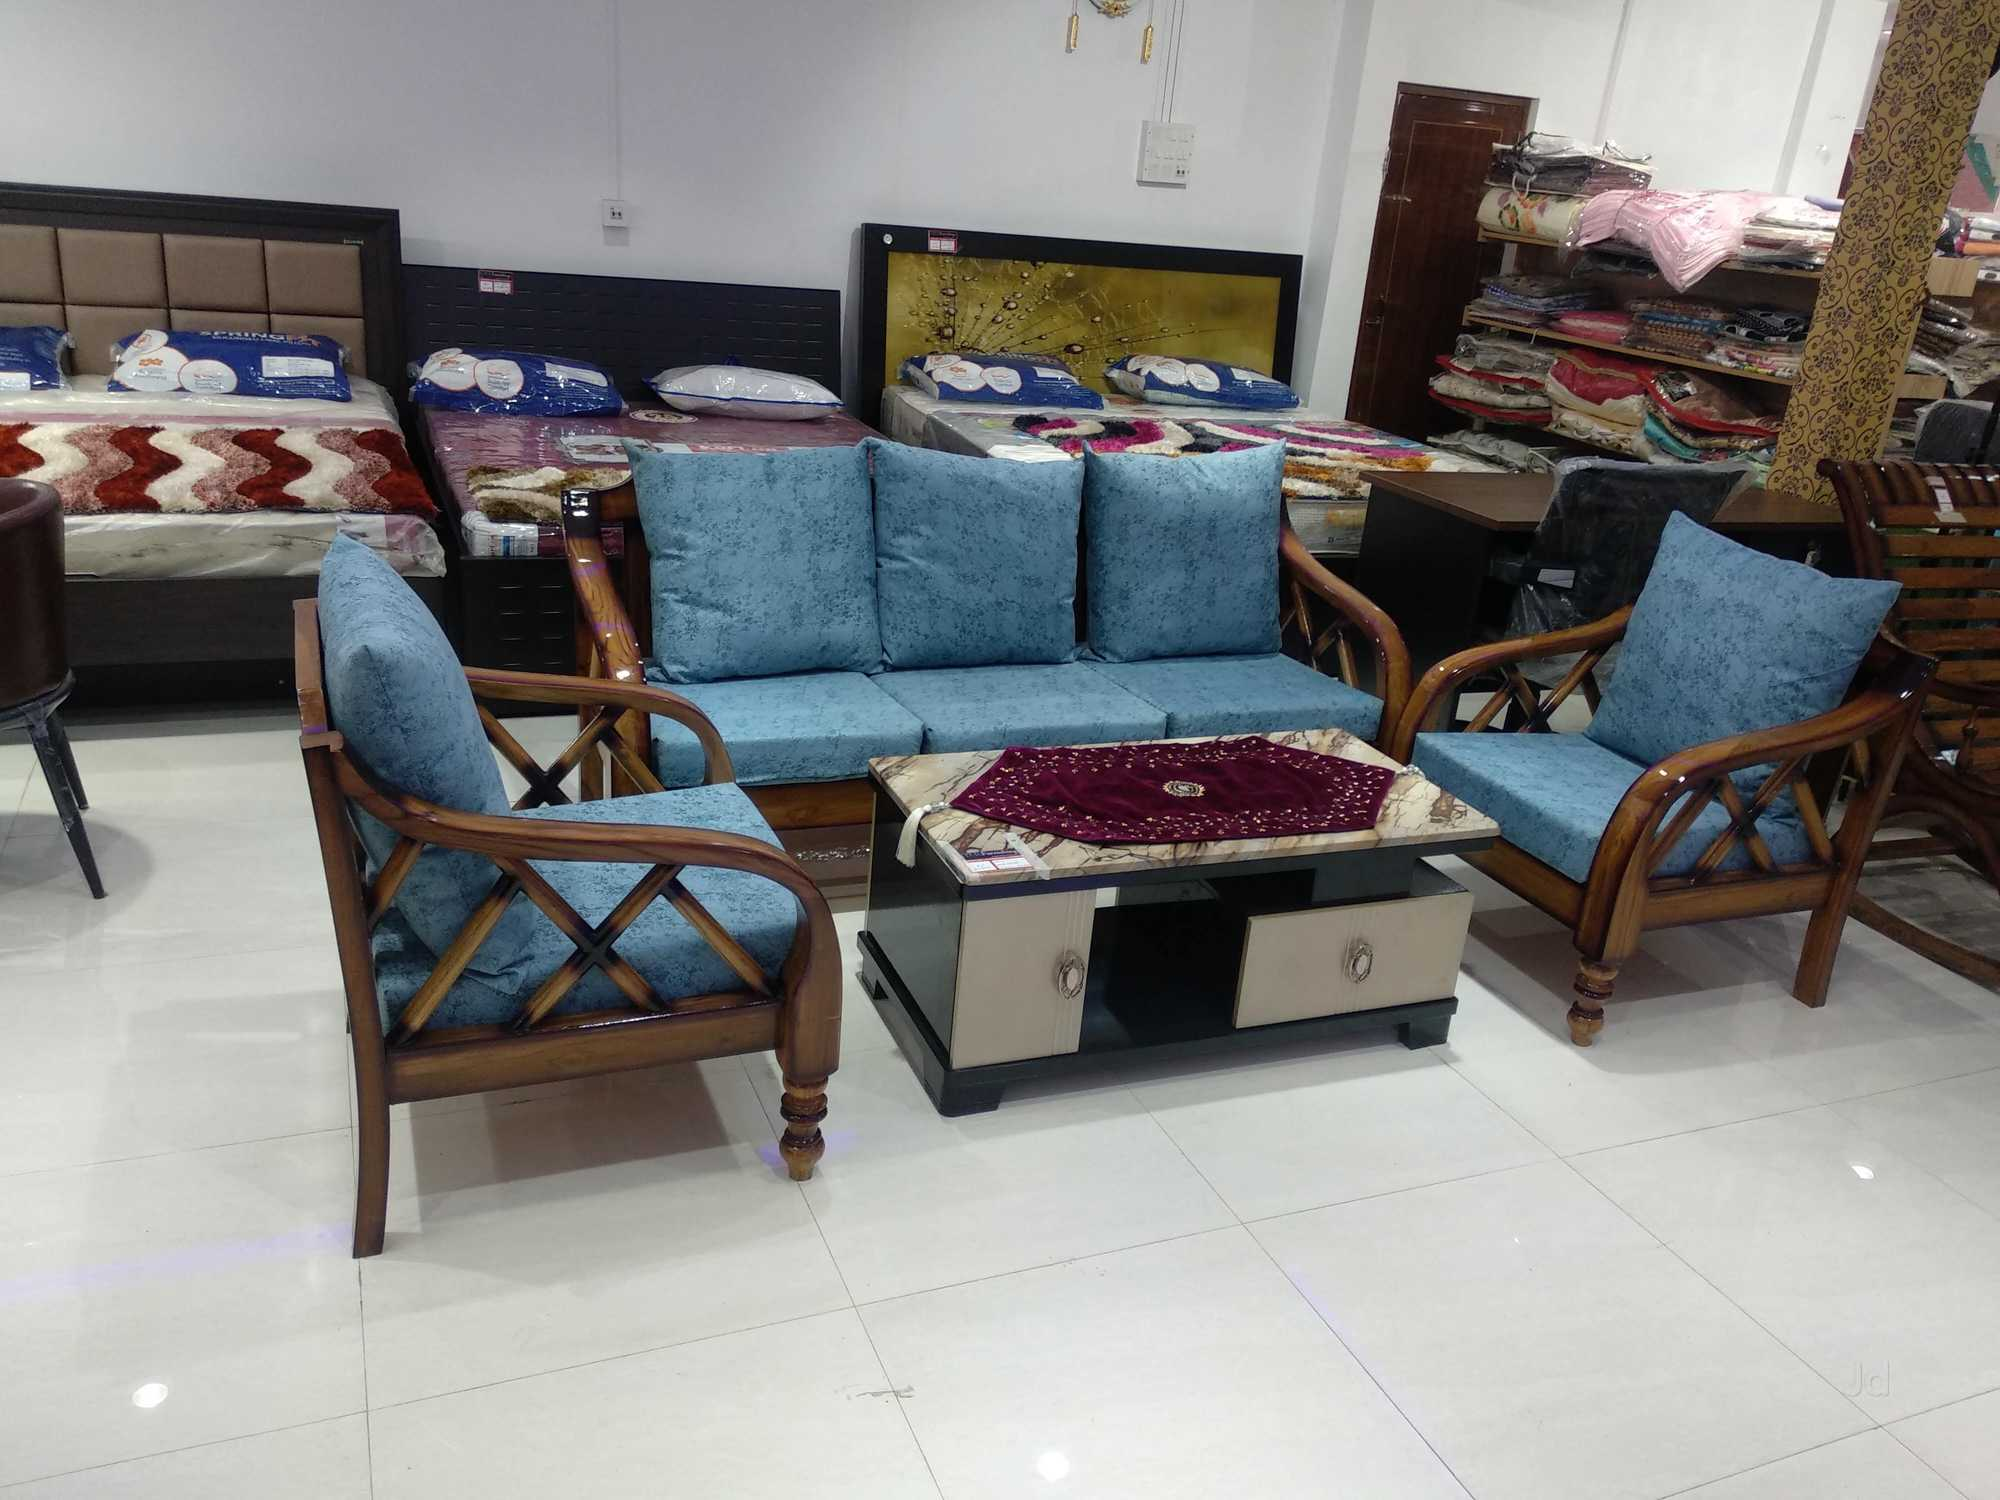 Interio Sofa Marilyn Top Godrej Interio Showrooms In G S Road Guwahati Best Godrej